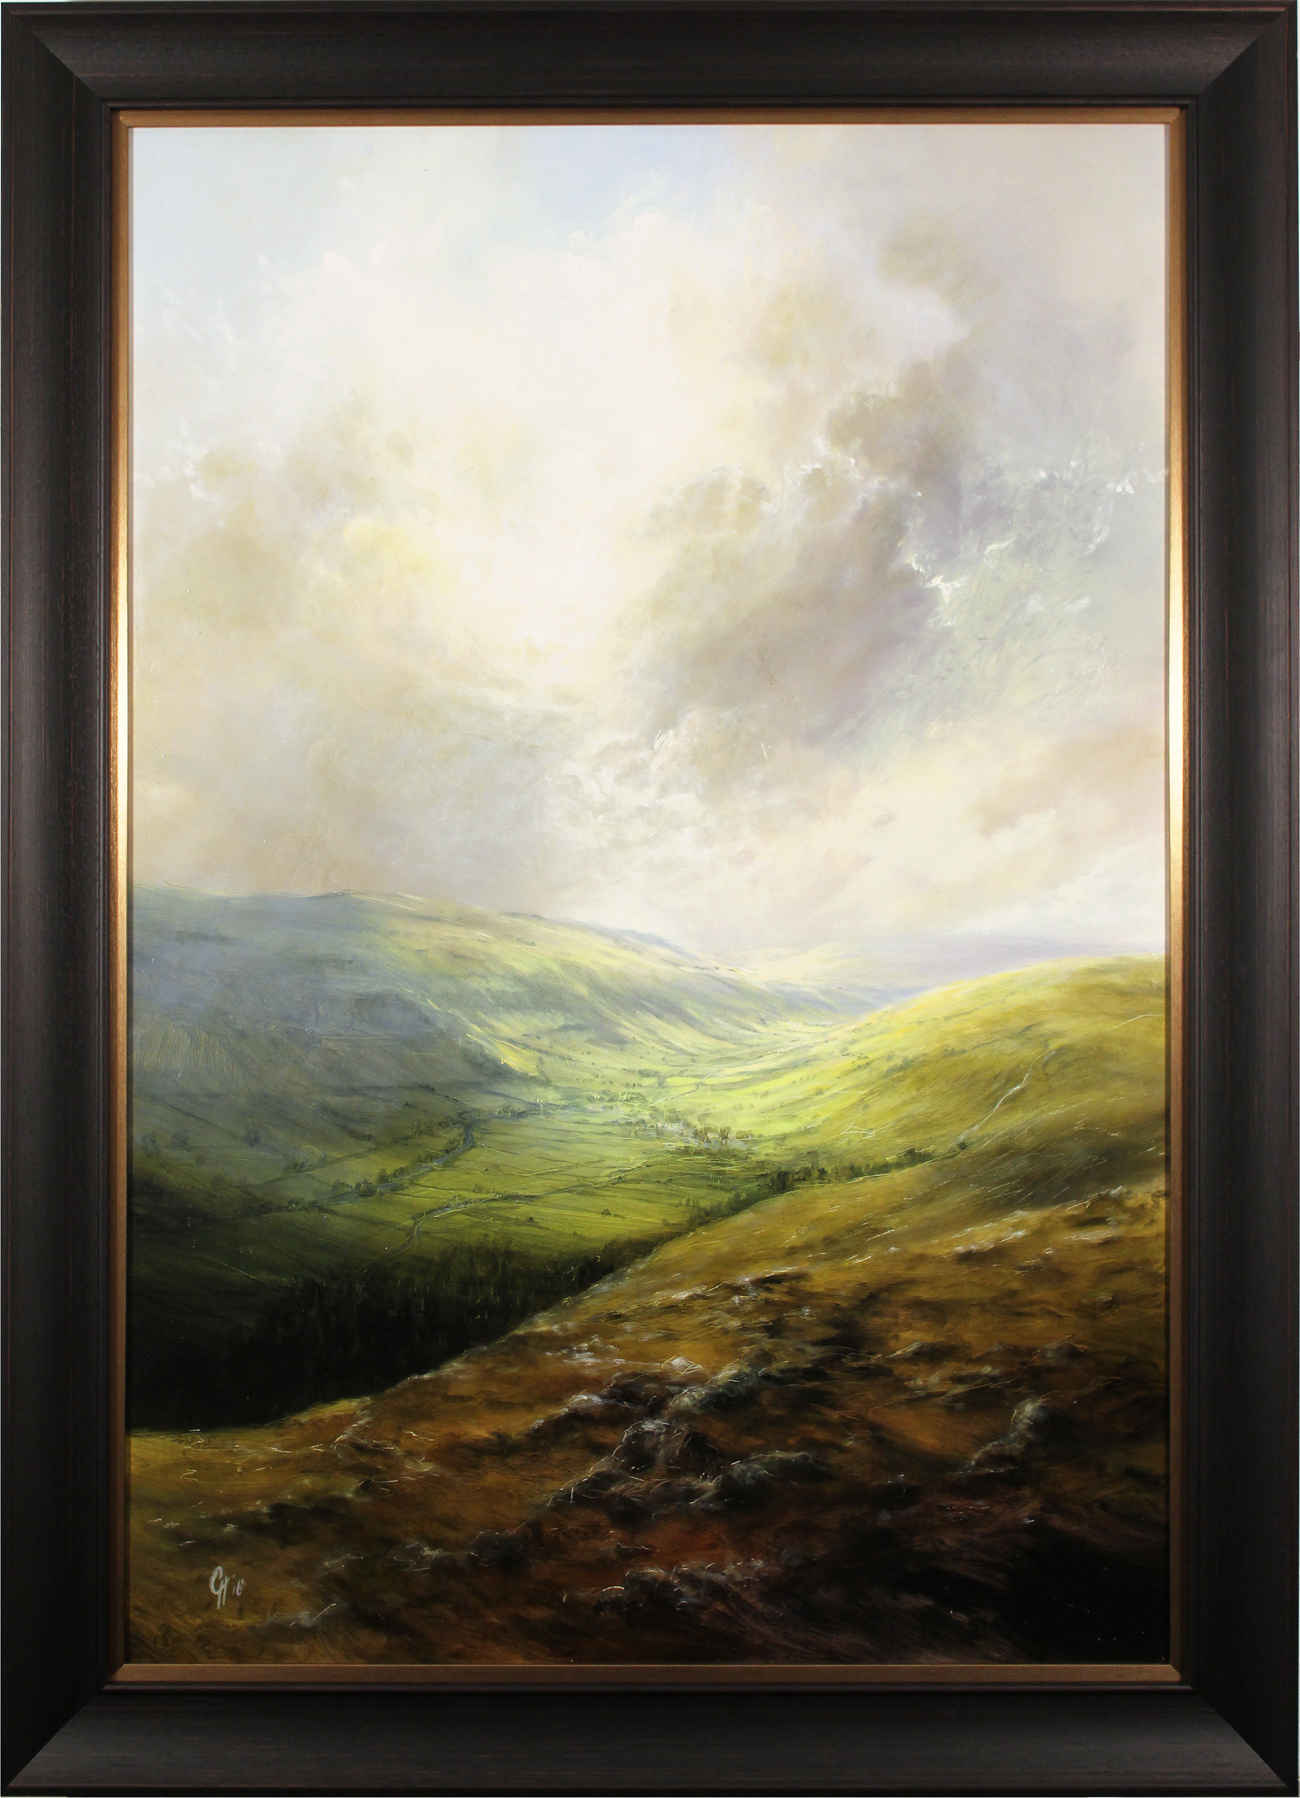 Clare Haley, Original oil painting on panel, The Majesty of the Wharfedale Valley, click to enlarge